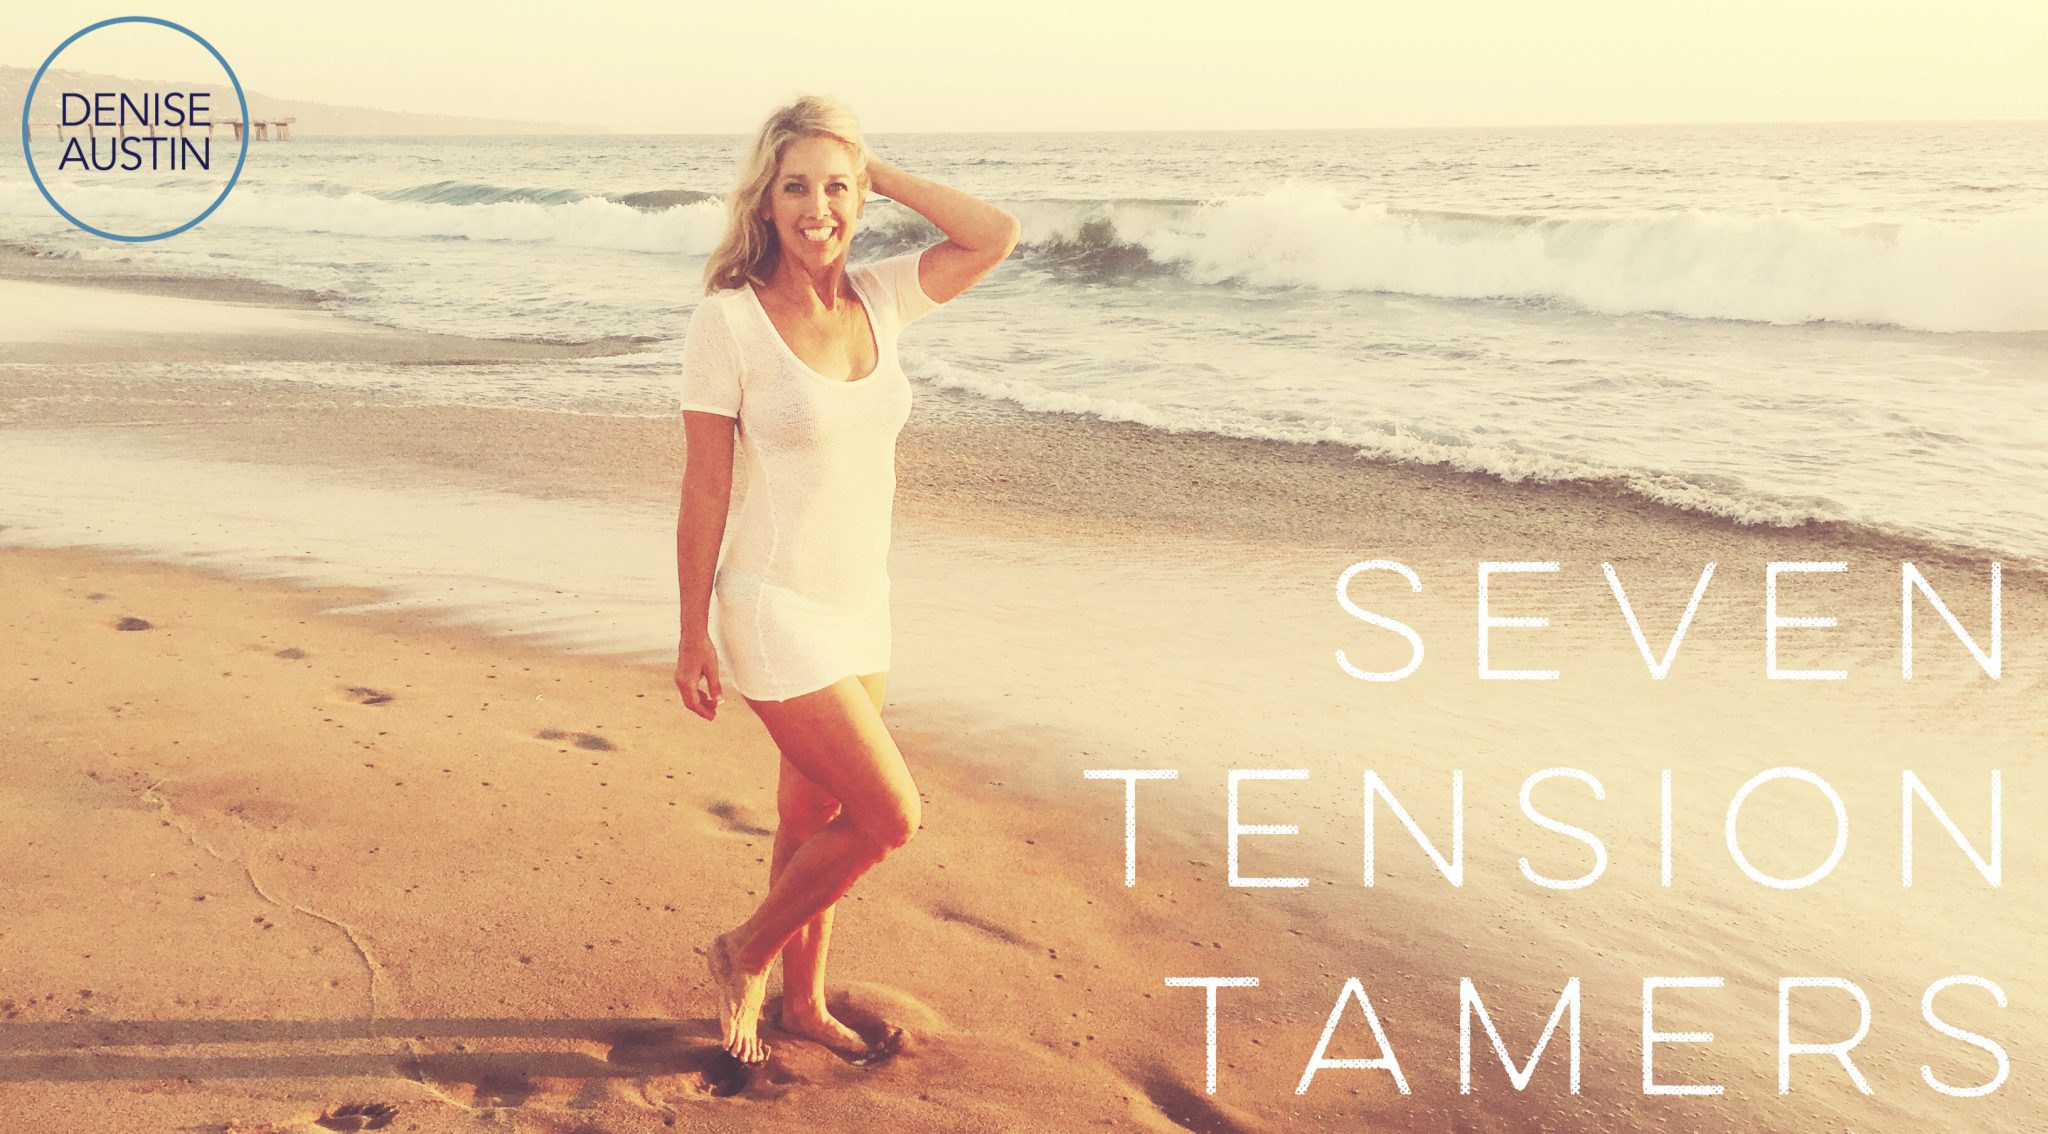 Seven Tension Tamers - Denise Austin